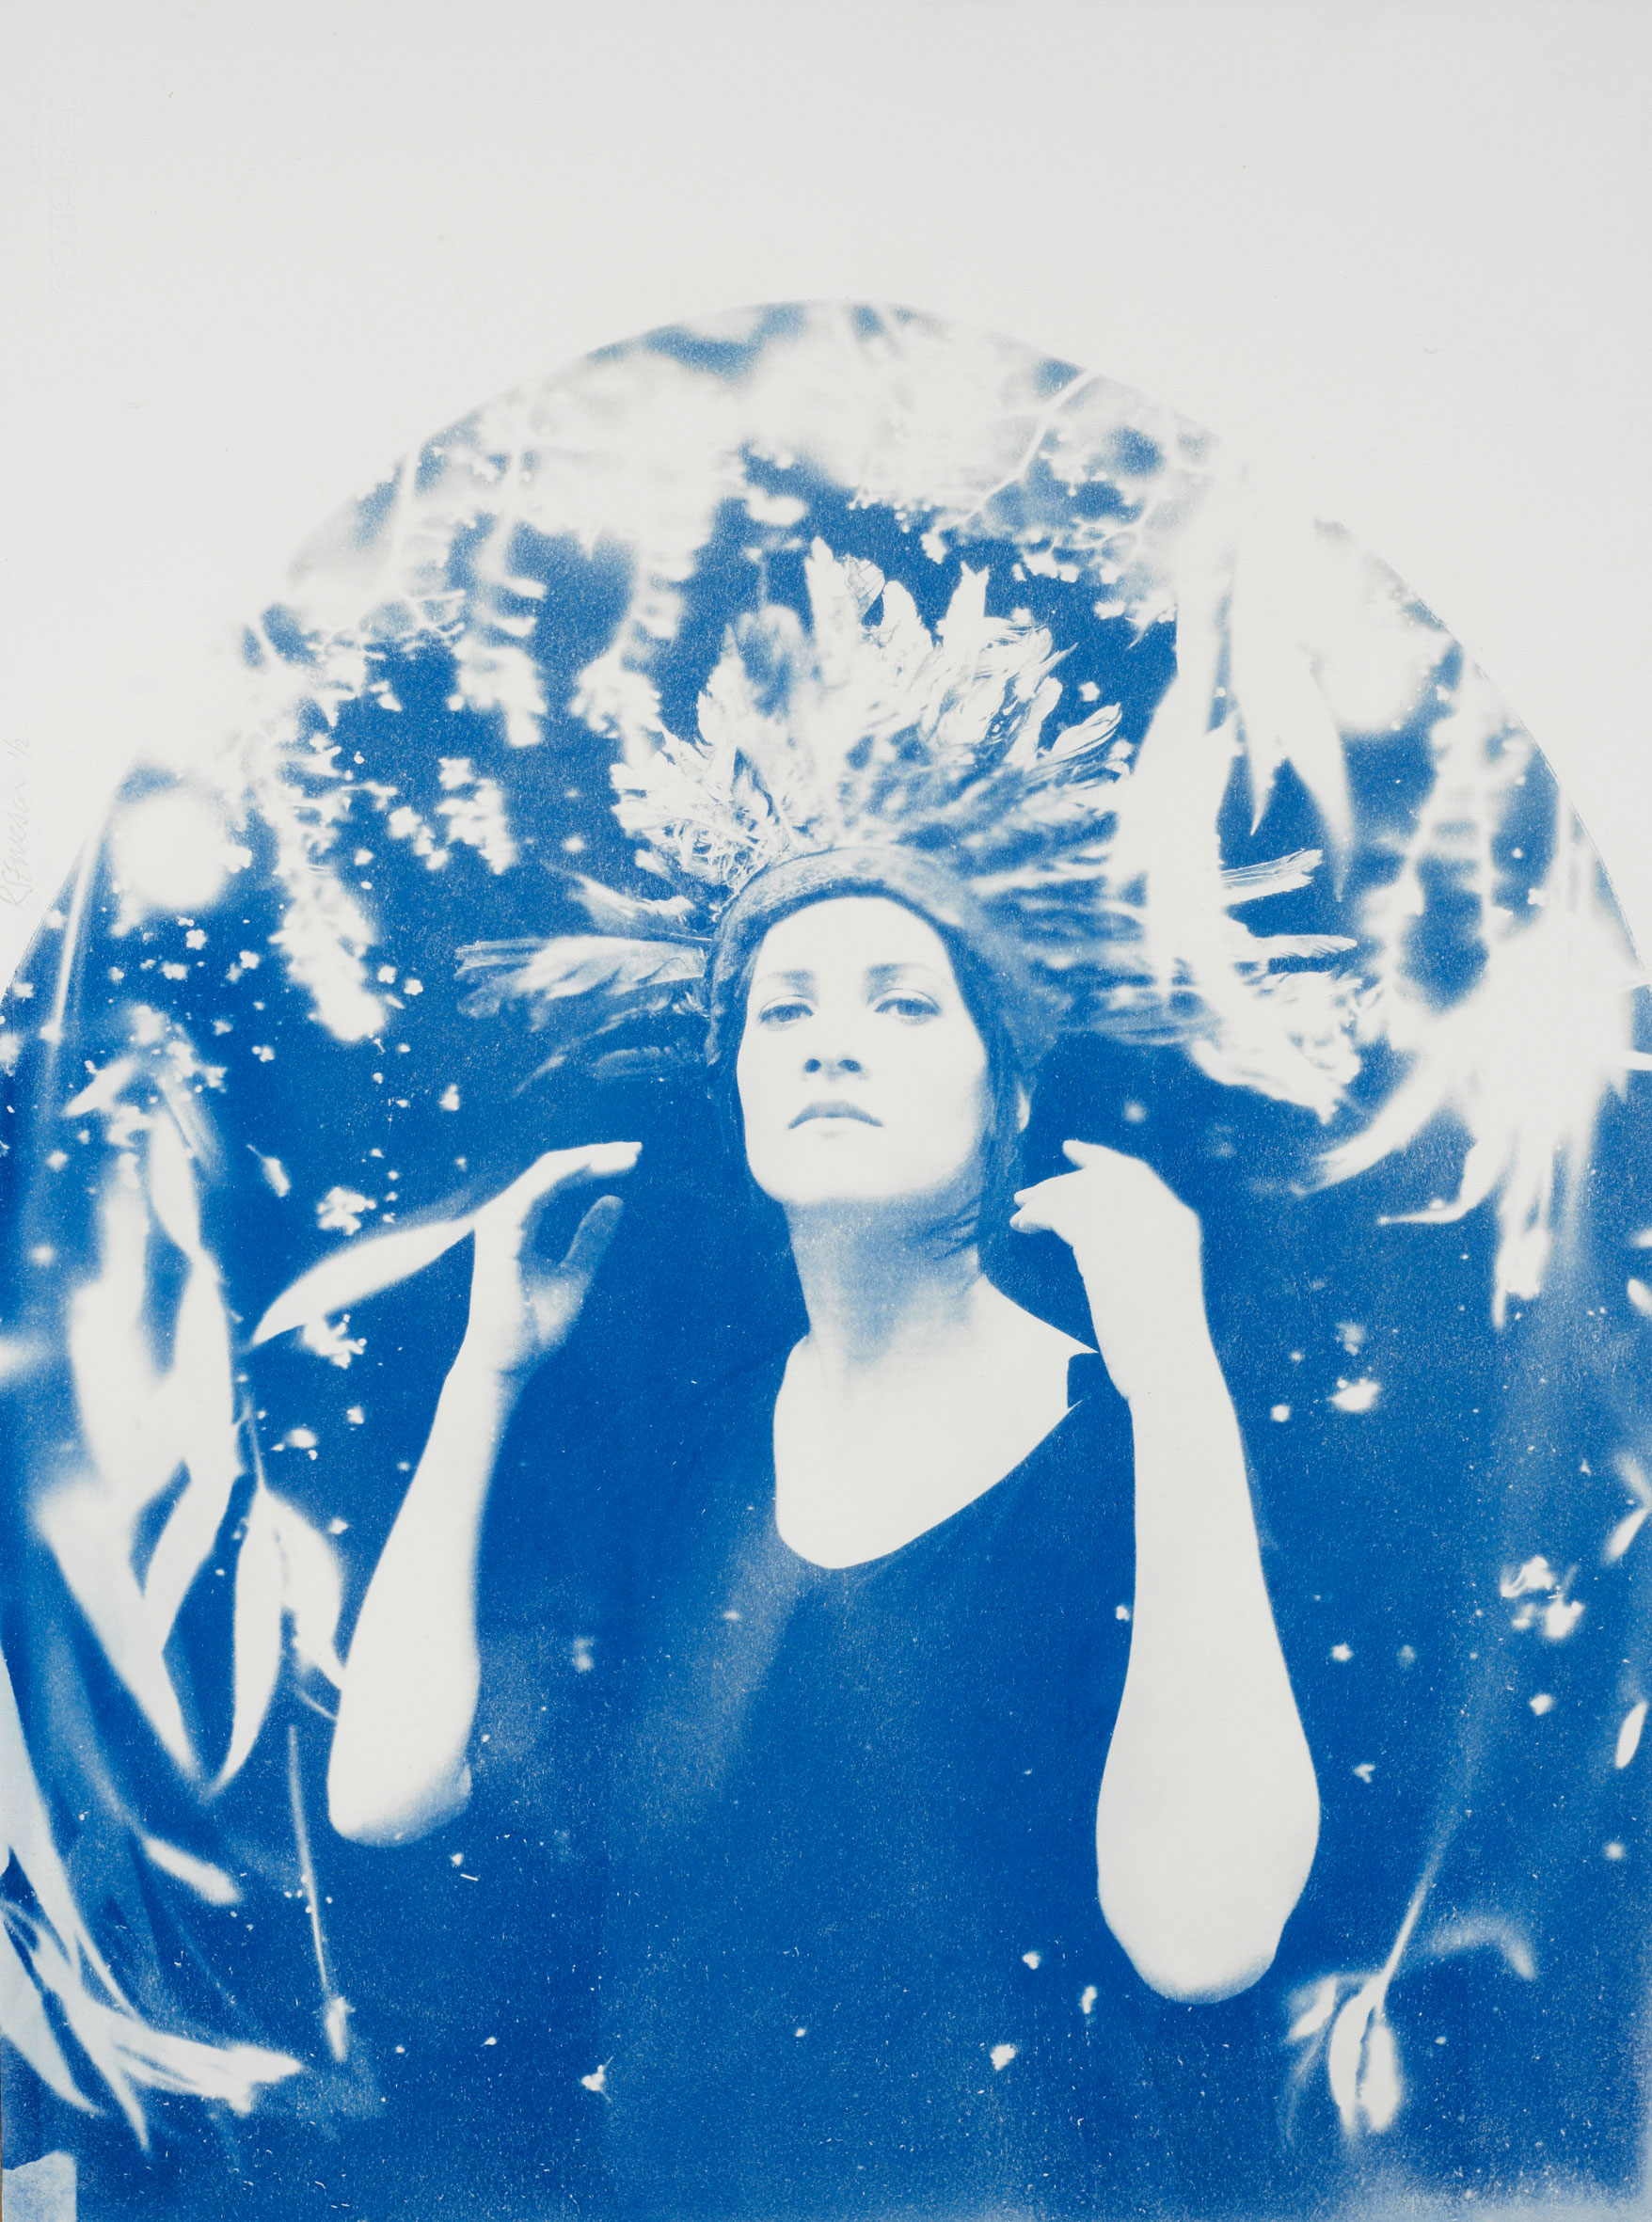 Lena  - 2015 - Unique Edition, 1 of 2 Cyanotype on paper, framed Artwork: 30 x 22 inches / 75 x 55 cm